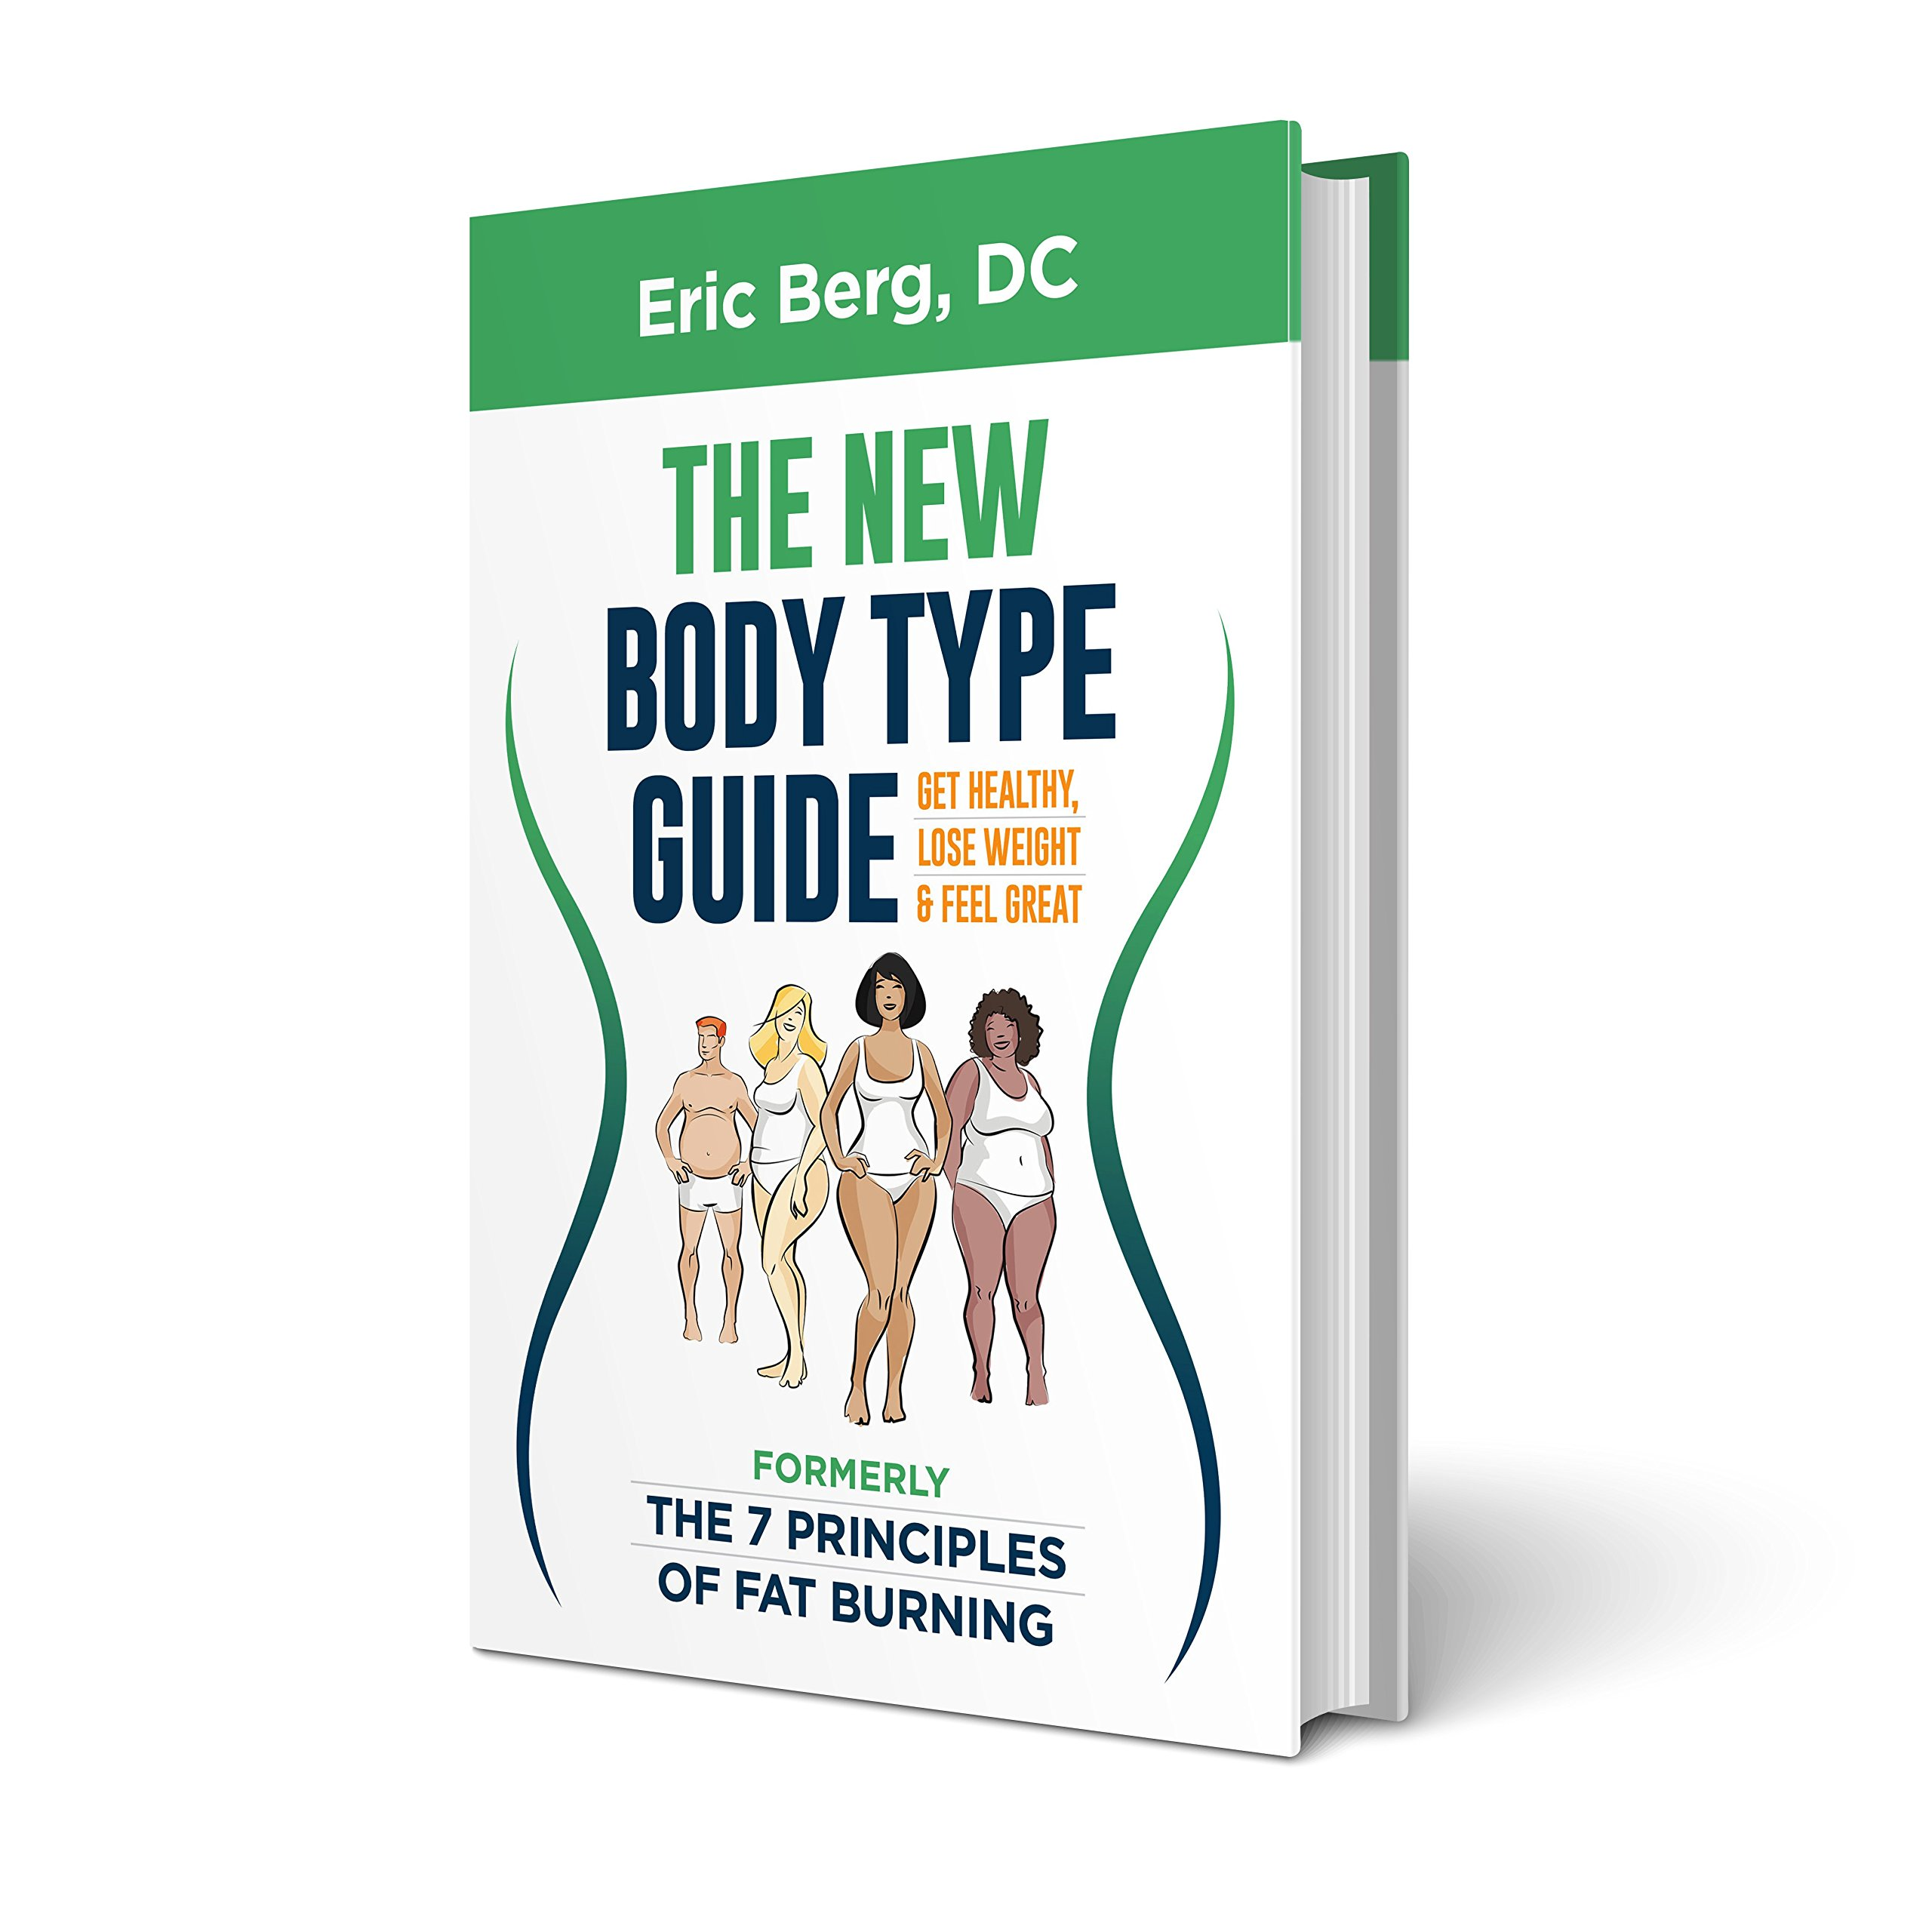 Adrenal Body Type Kit – Complete Program For A Healthy Adrenal Body Type – Fight Fatigue, Belly Fat and Stress By Dr. Berg by Dr. Berg's Nutritionals